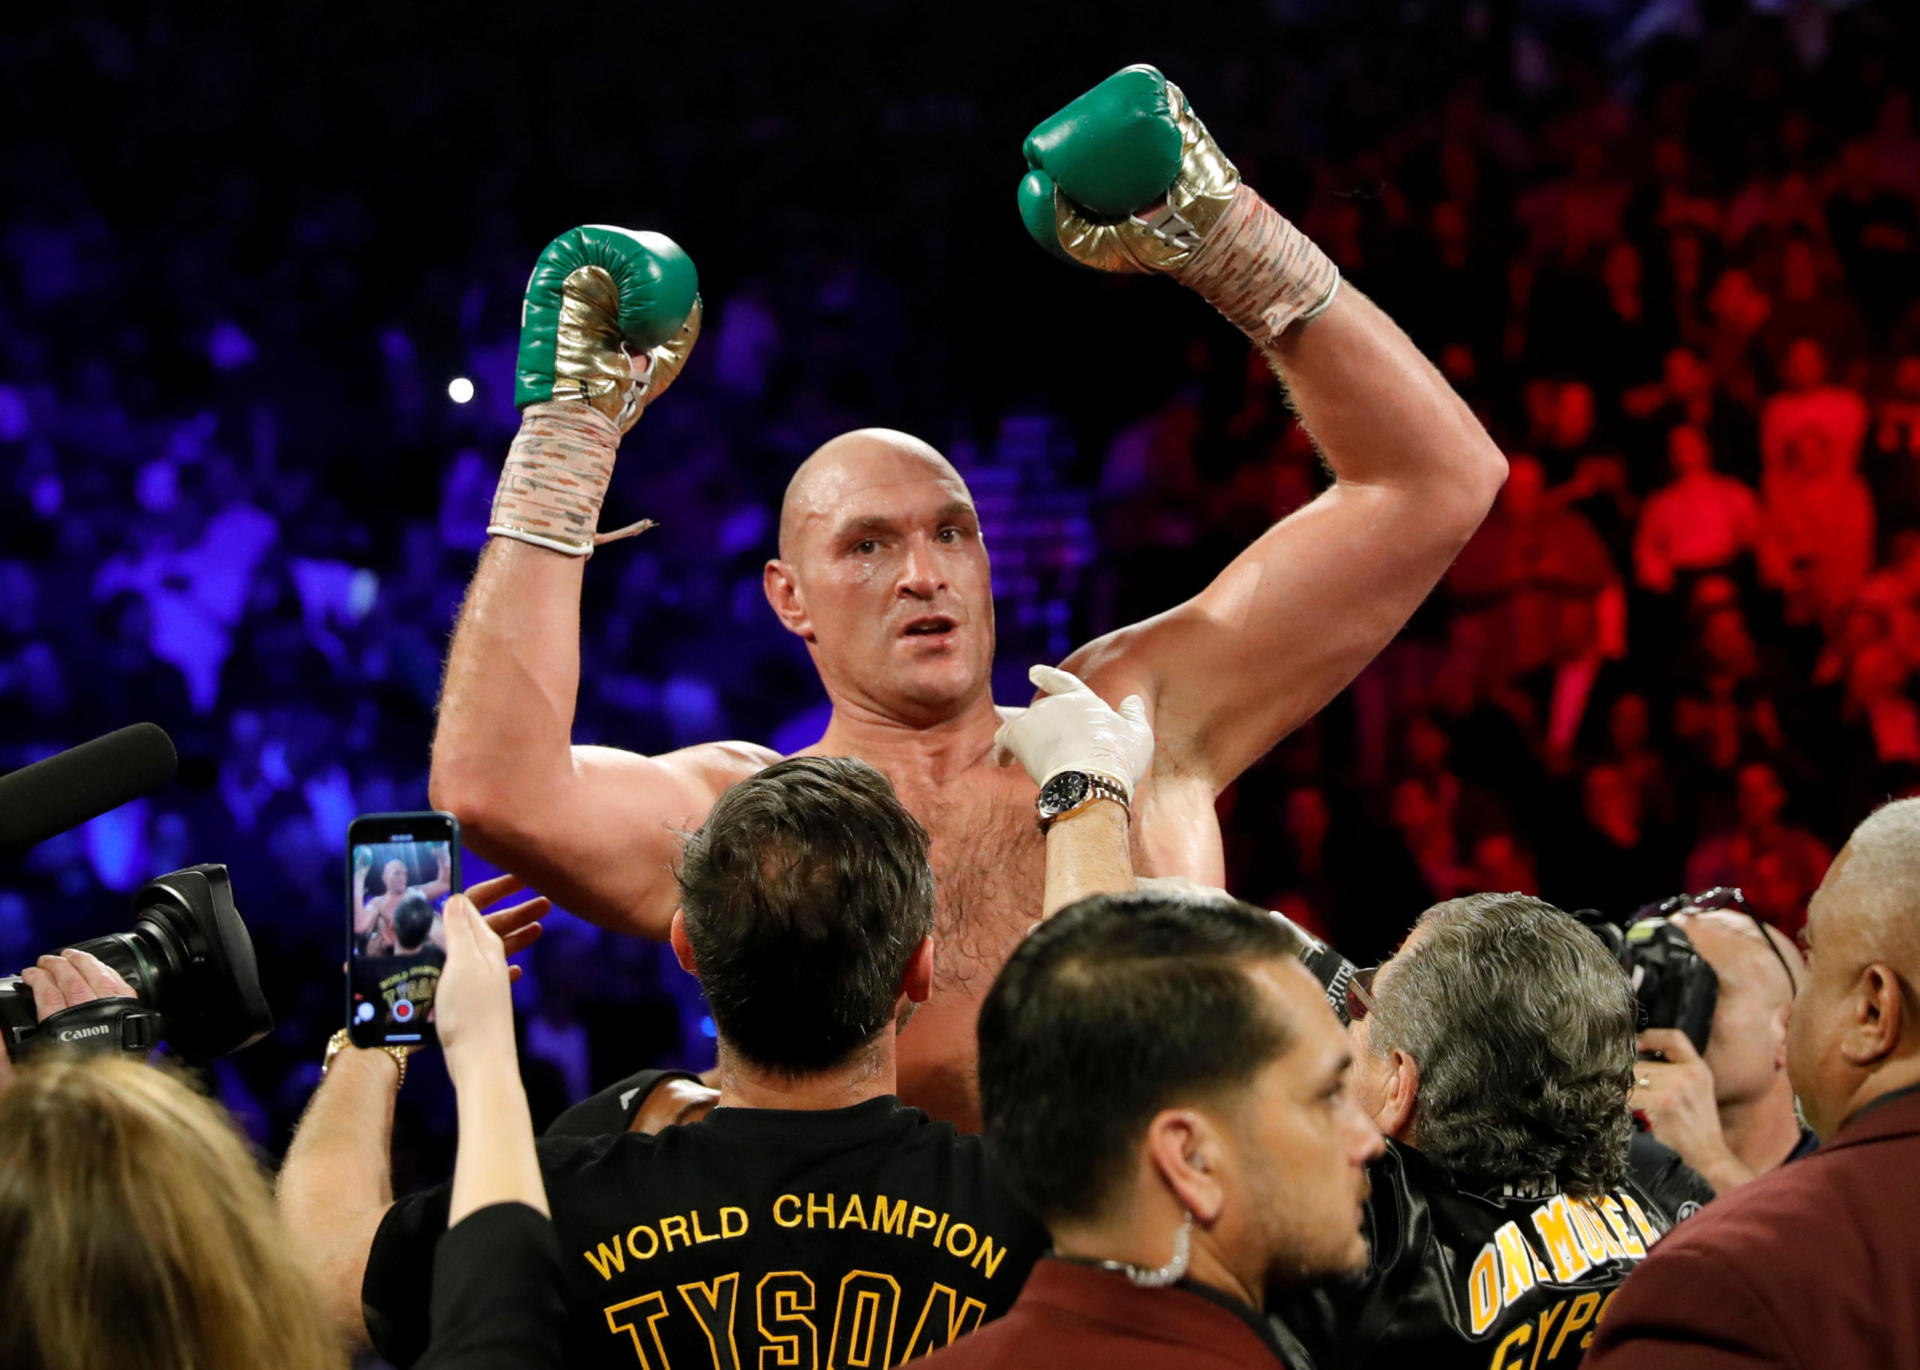 Tyson Fury On The Brink Of Greatness